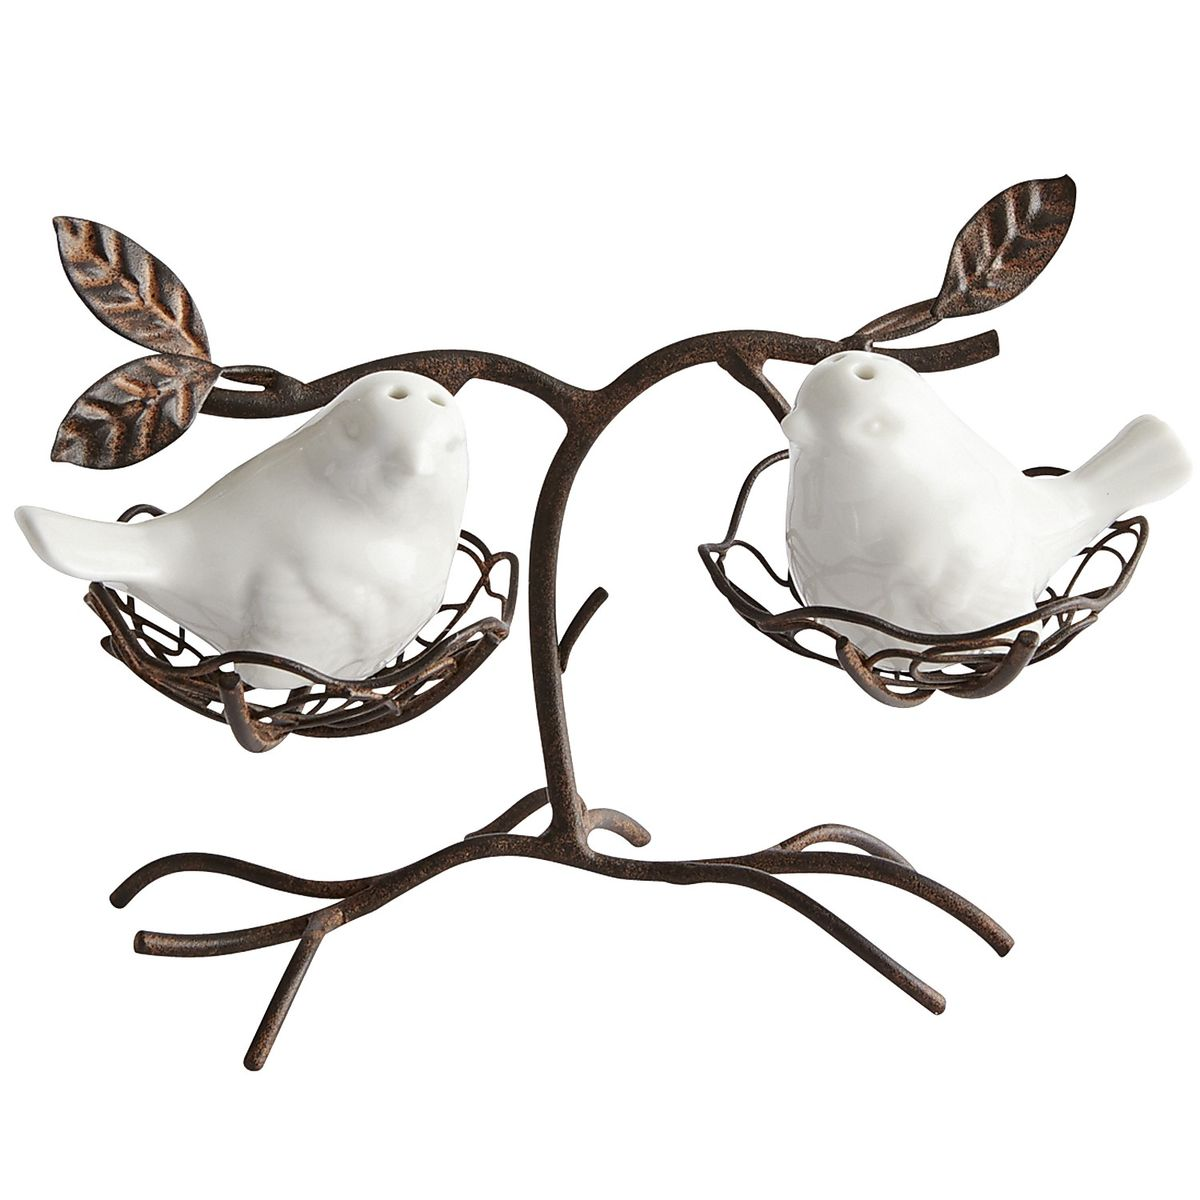 Apartminty Fresh Picks | Take A Walk On The Wild Side | Songbird Salt & Pepper Shakers